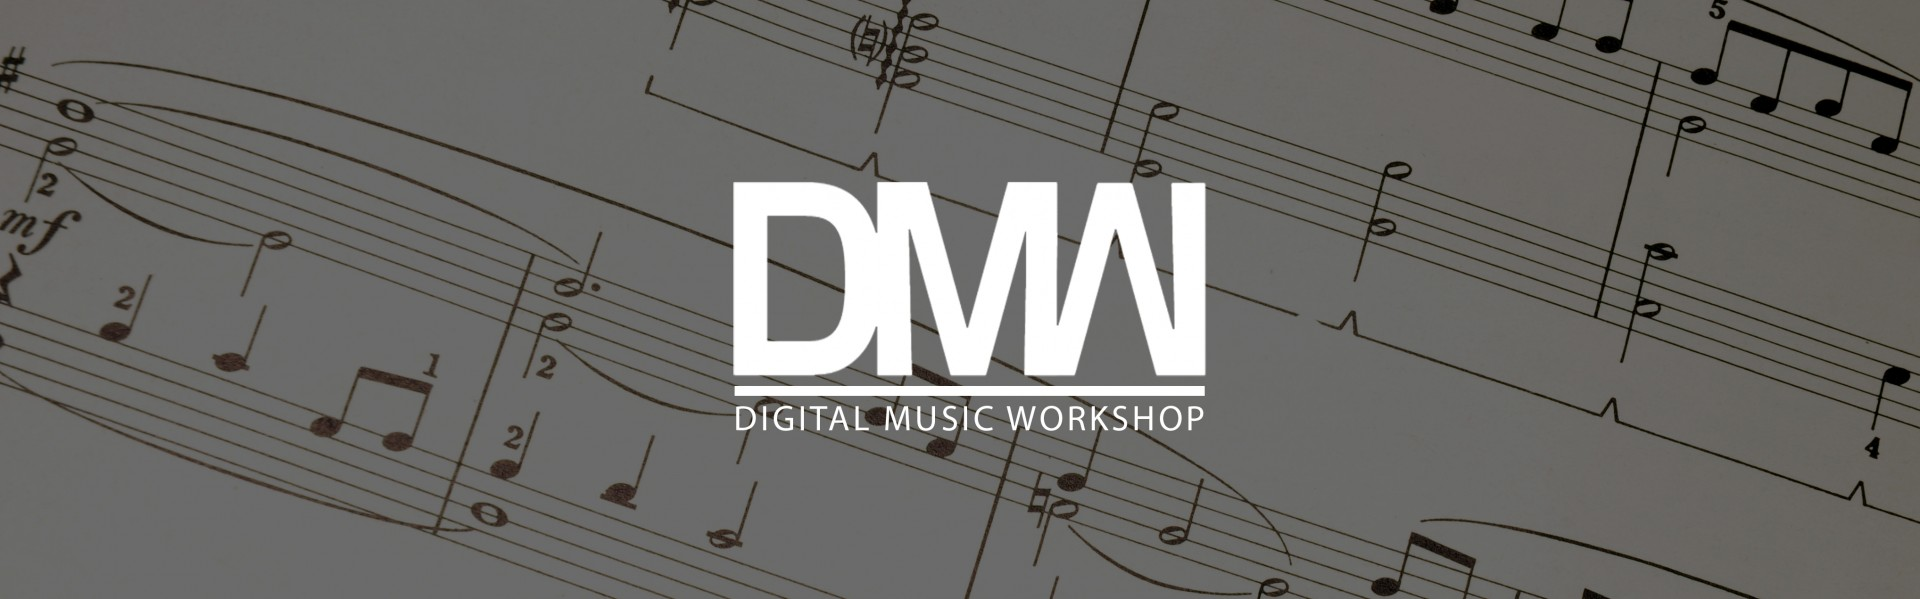 Digital Music Workshop